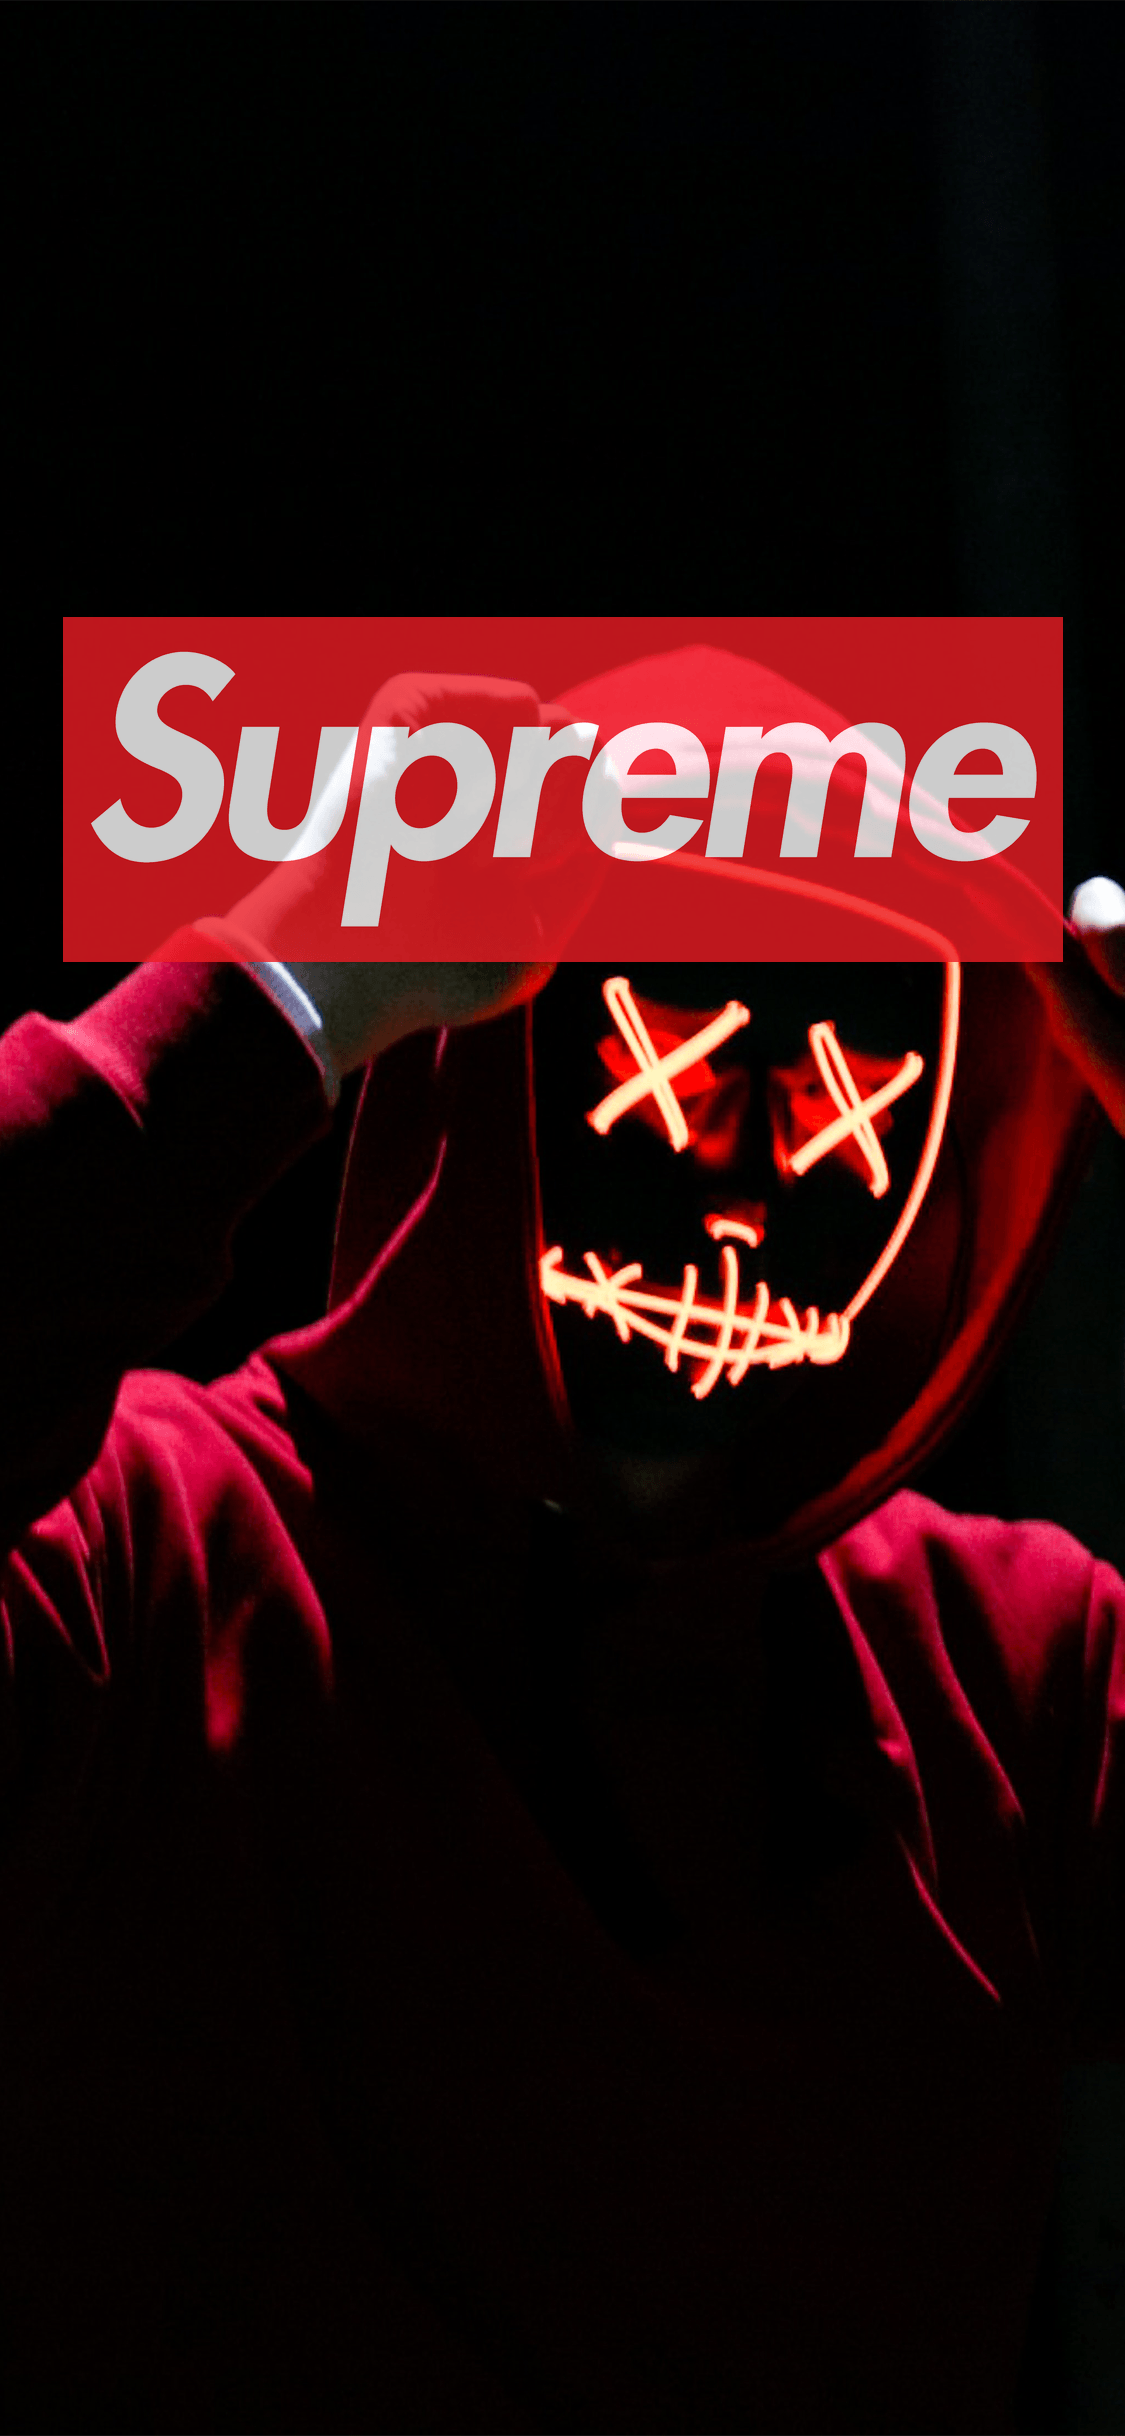 Supreme Cool Wallpapers Wallpaper Cave